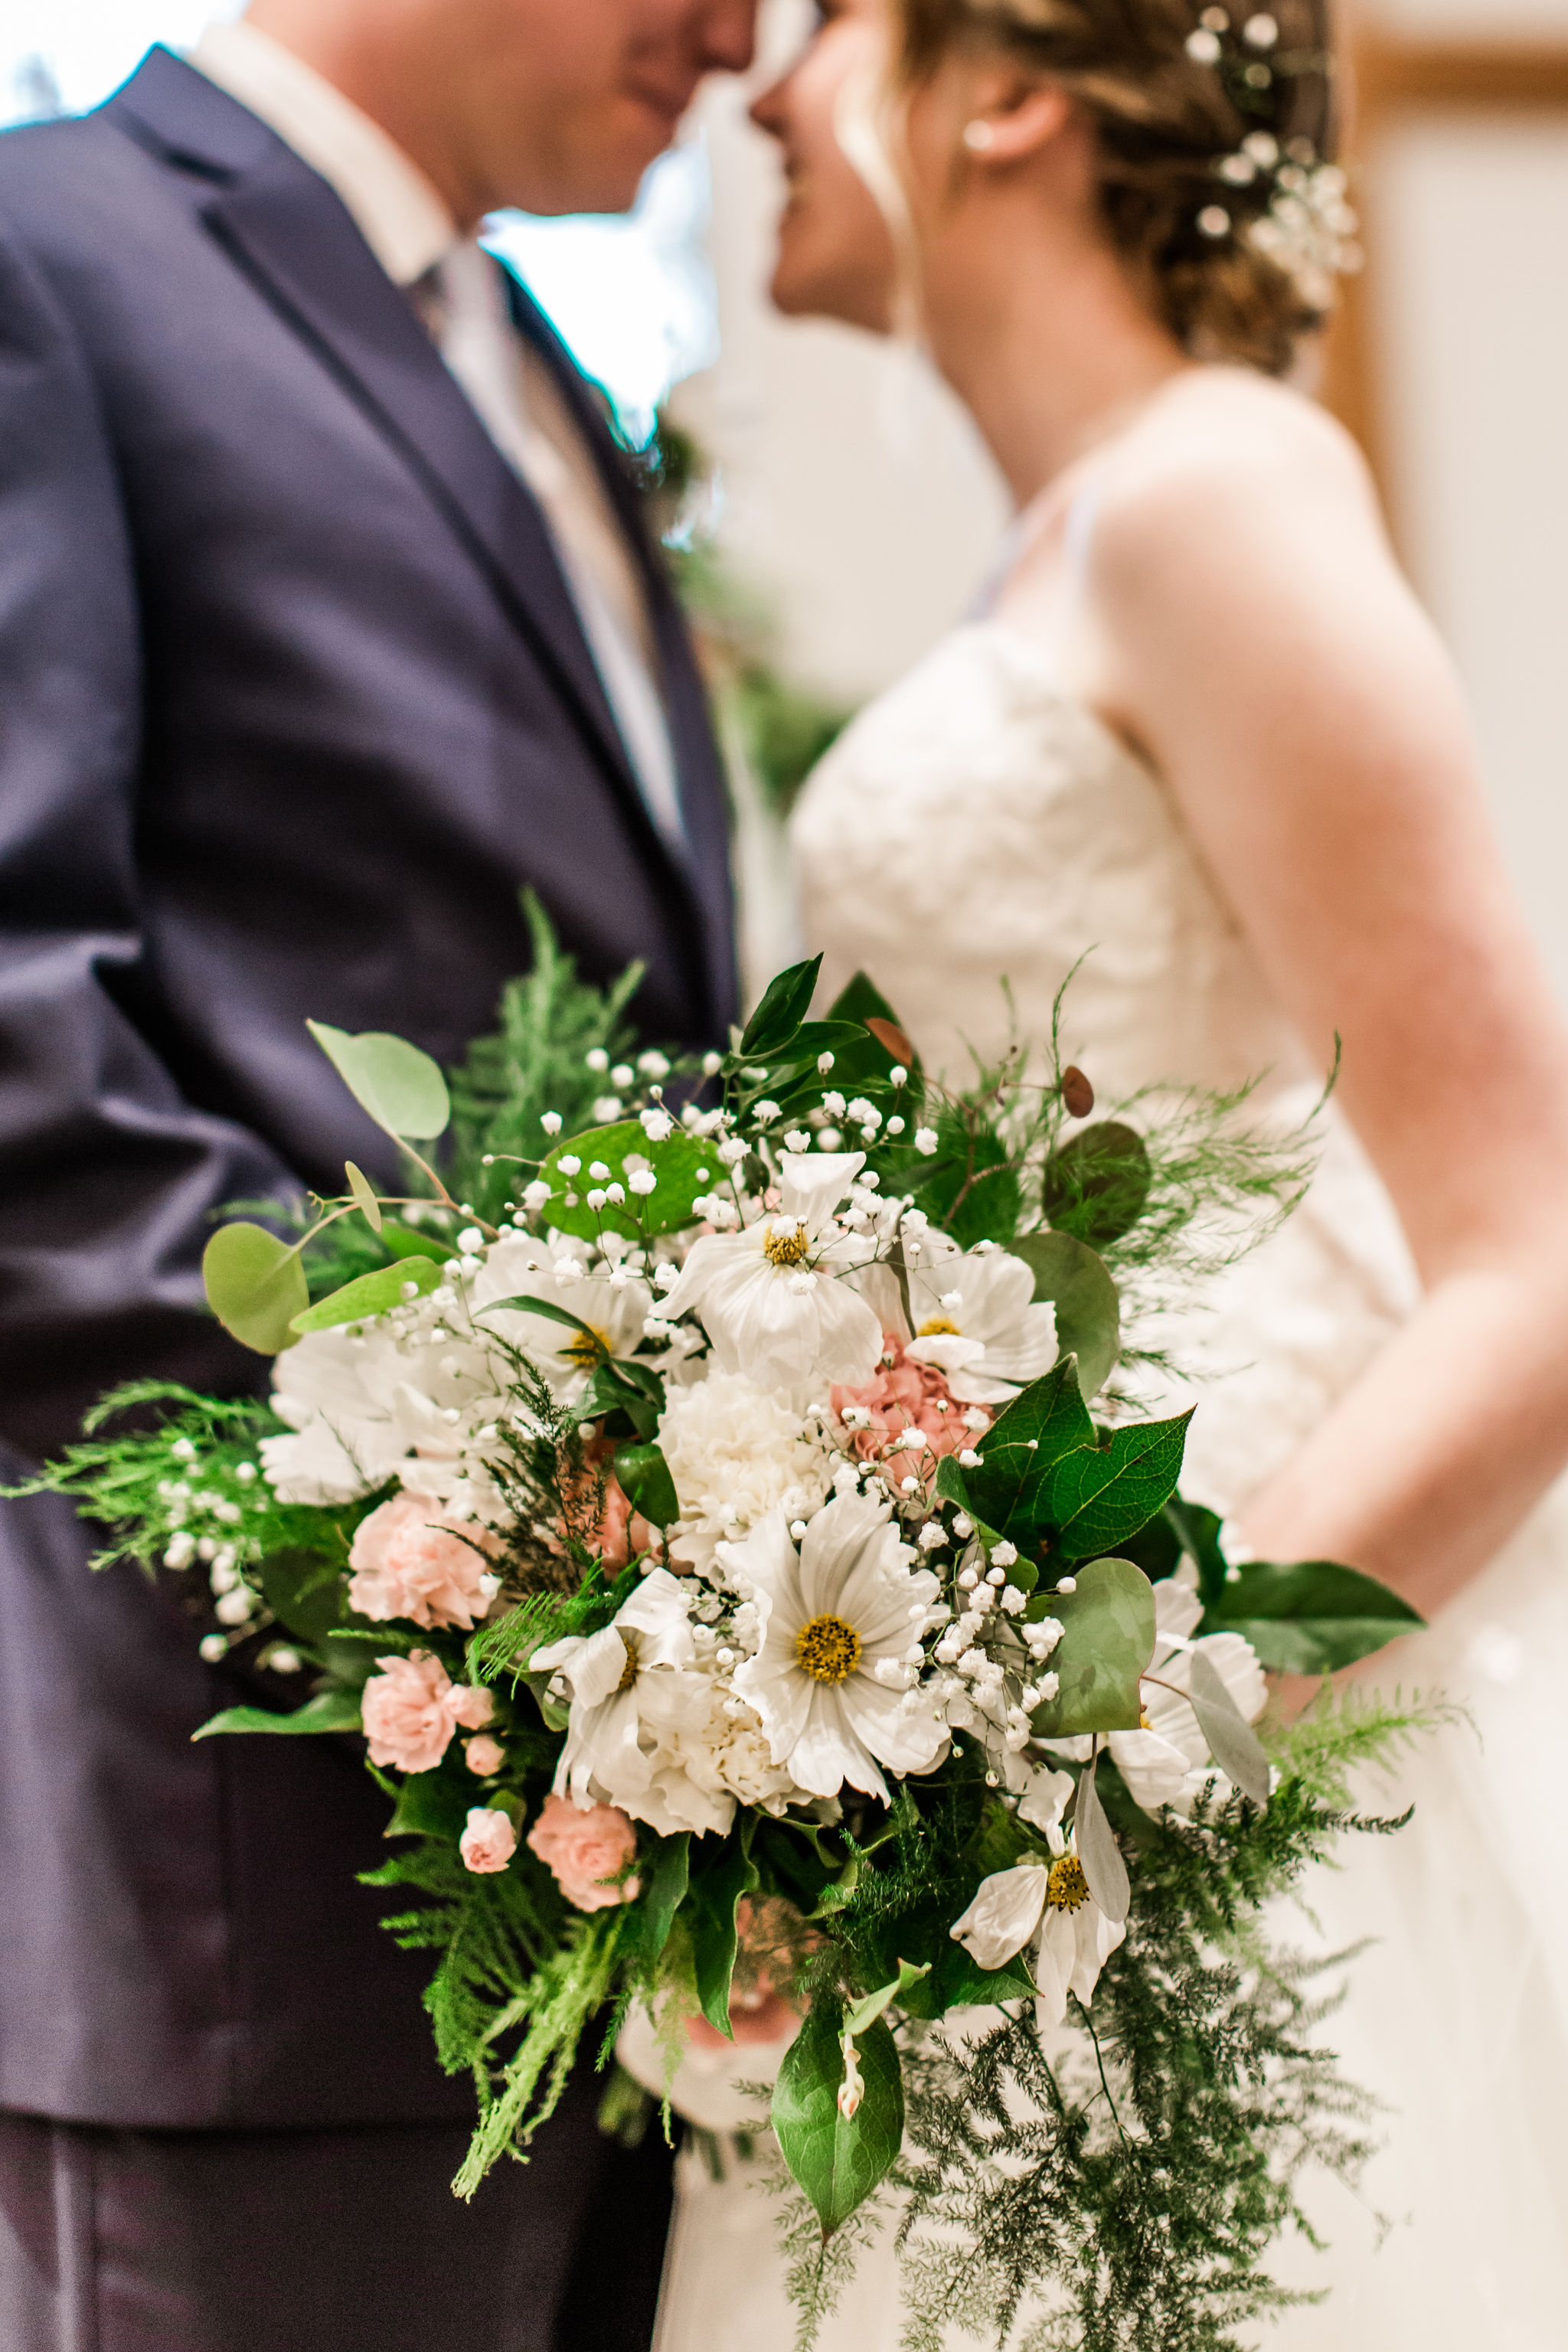 Abby's Grandmother made all of the floral arrangements used in their wedding. The white cosmos flowers seen only in Abby's bouquet were grown from seed this spring specifically for Abby's wedding bouquet.